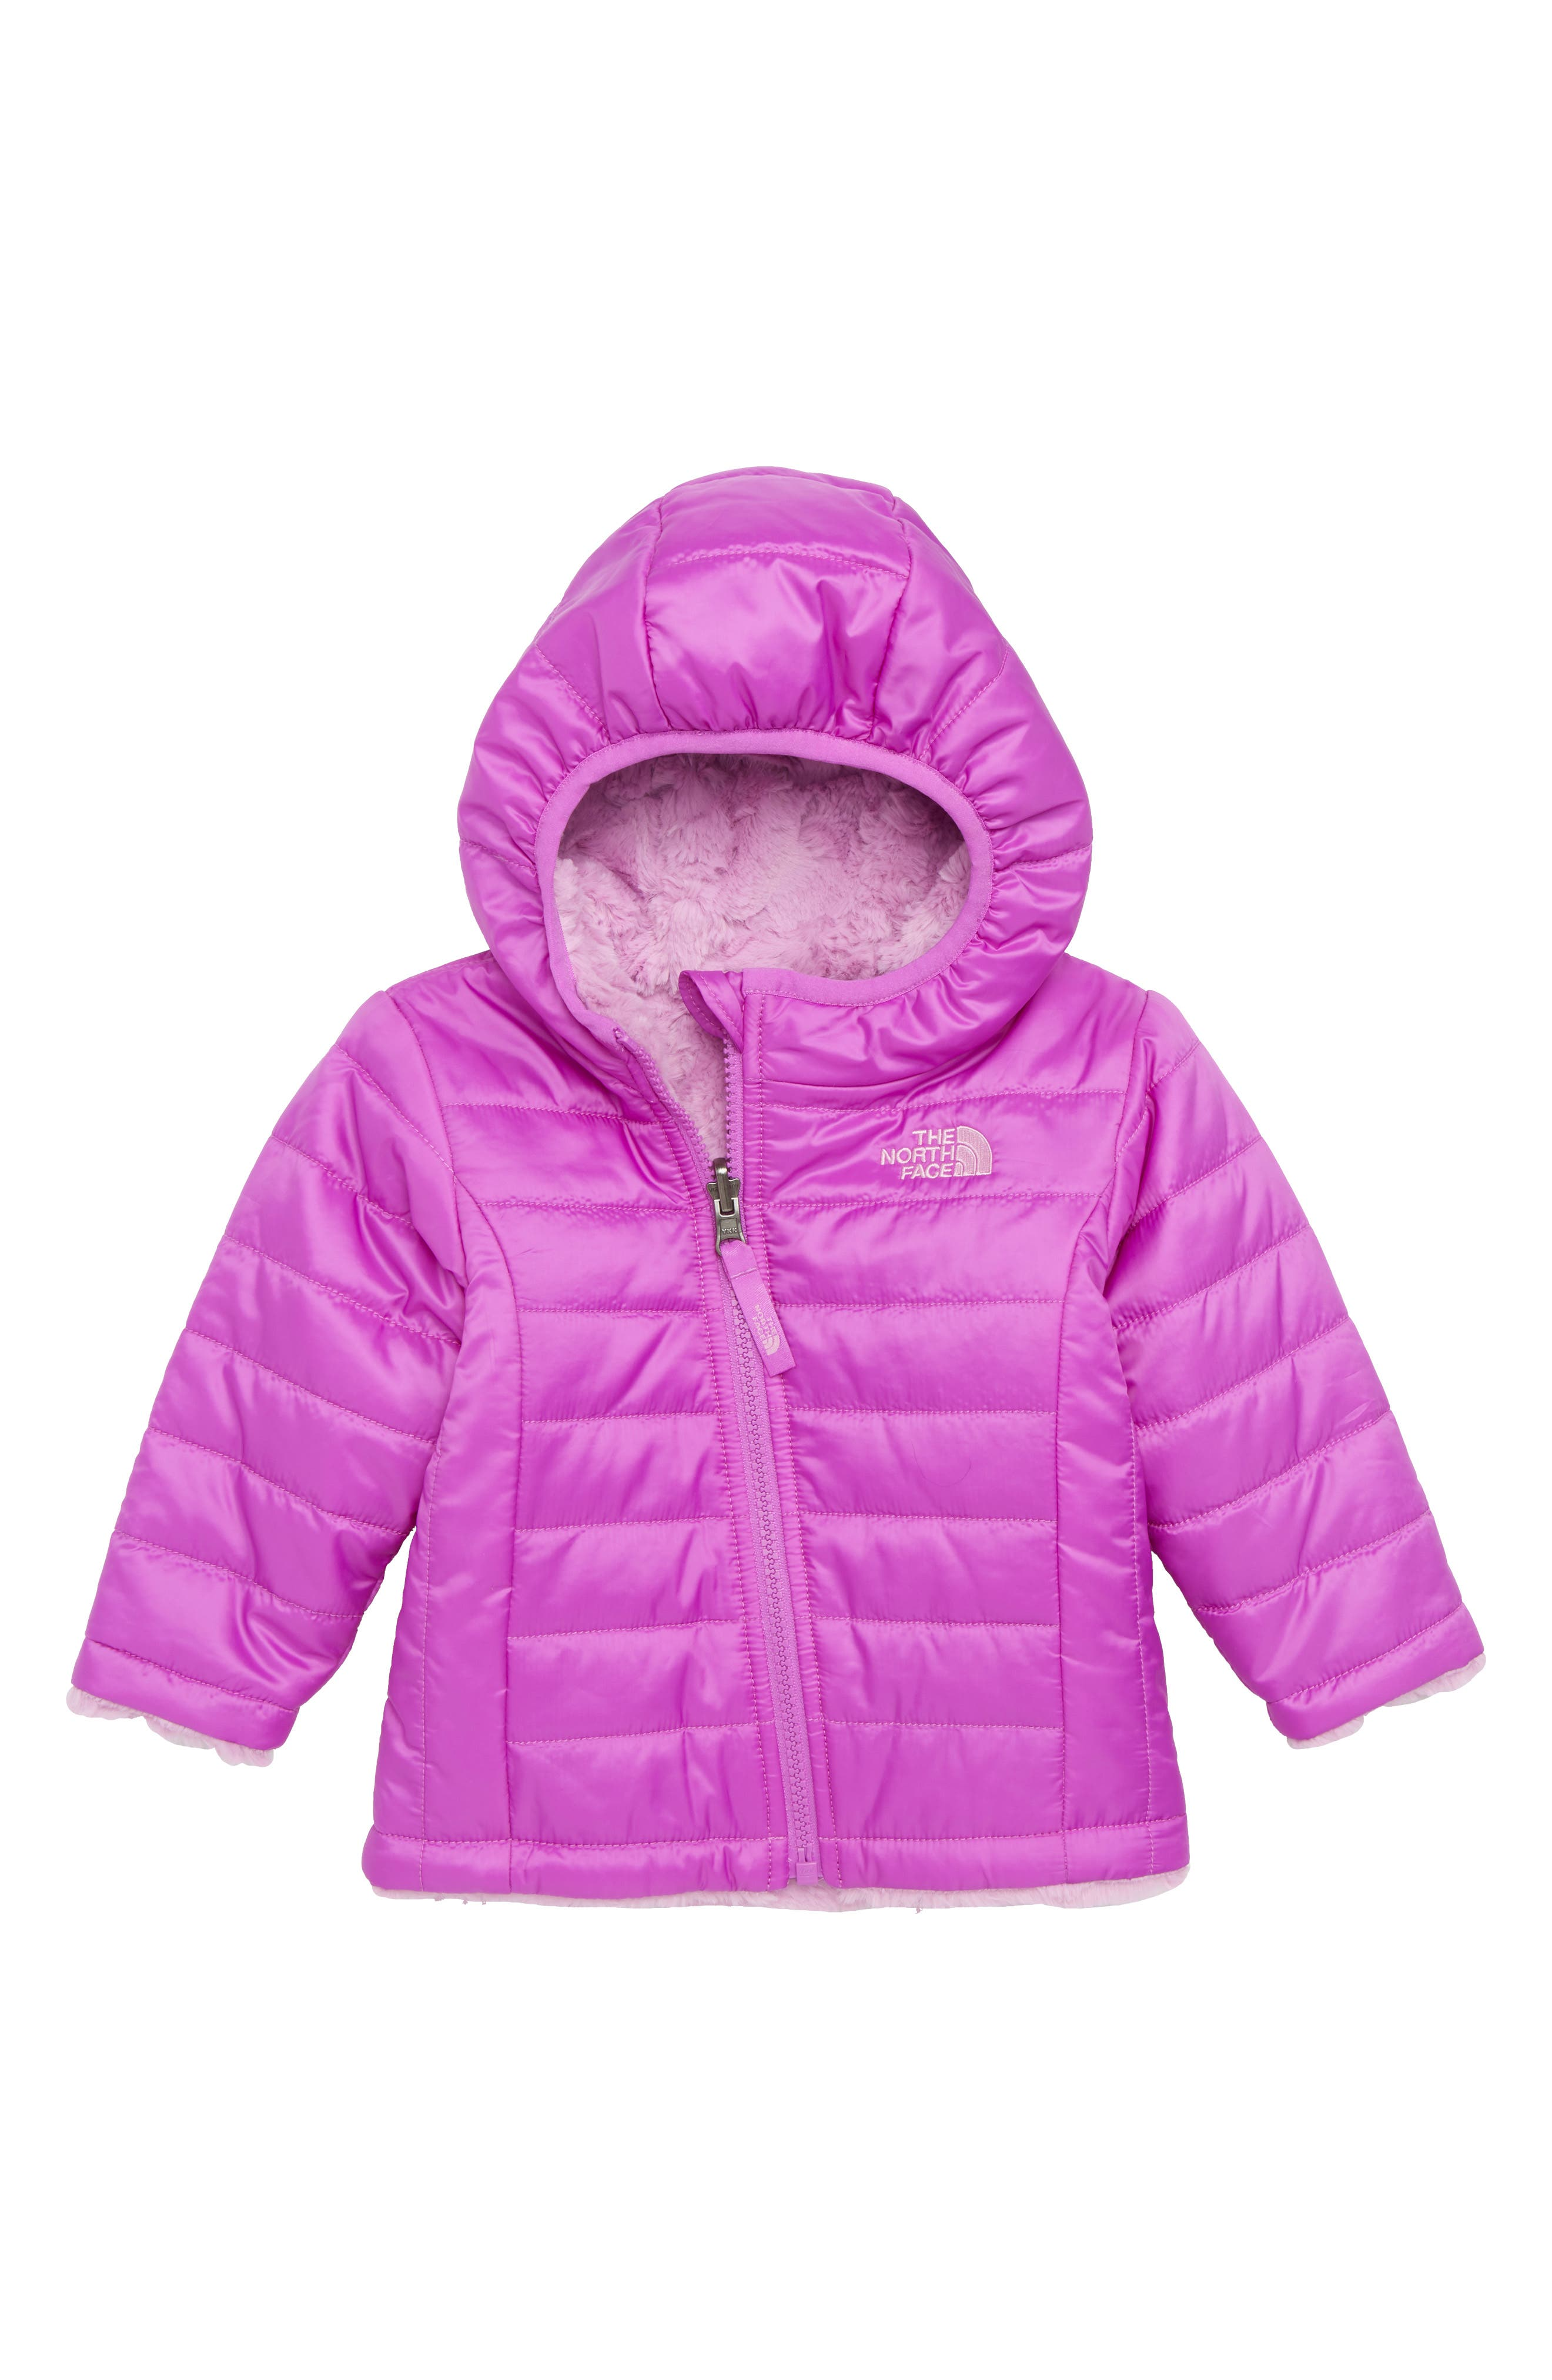 THE NORTH FACE,                             Mossbud Reversible Water Repellent Heatseeker<sup>™</sup> Insulated Jacket,                             Main thumbnail 1, color,                             510